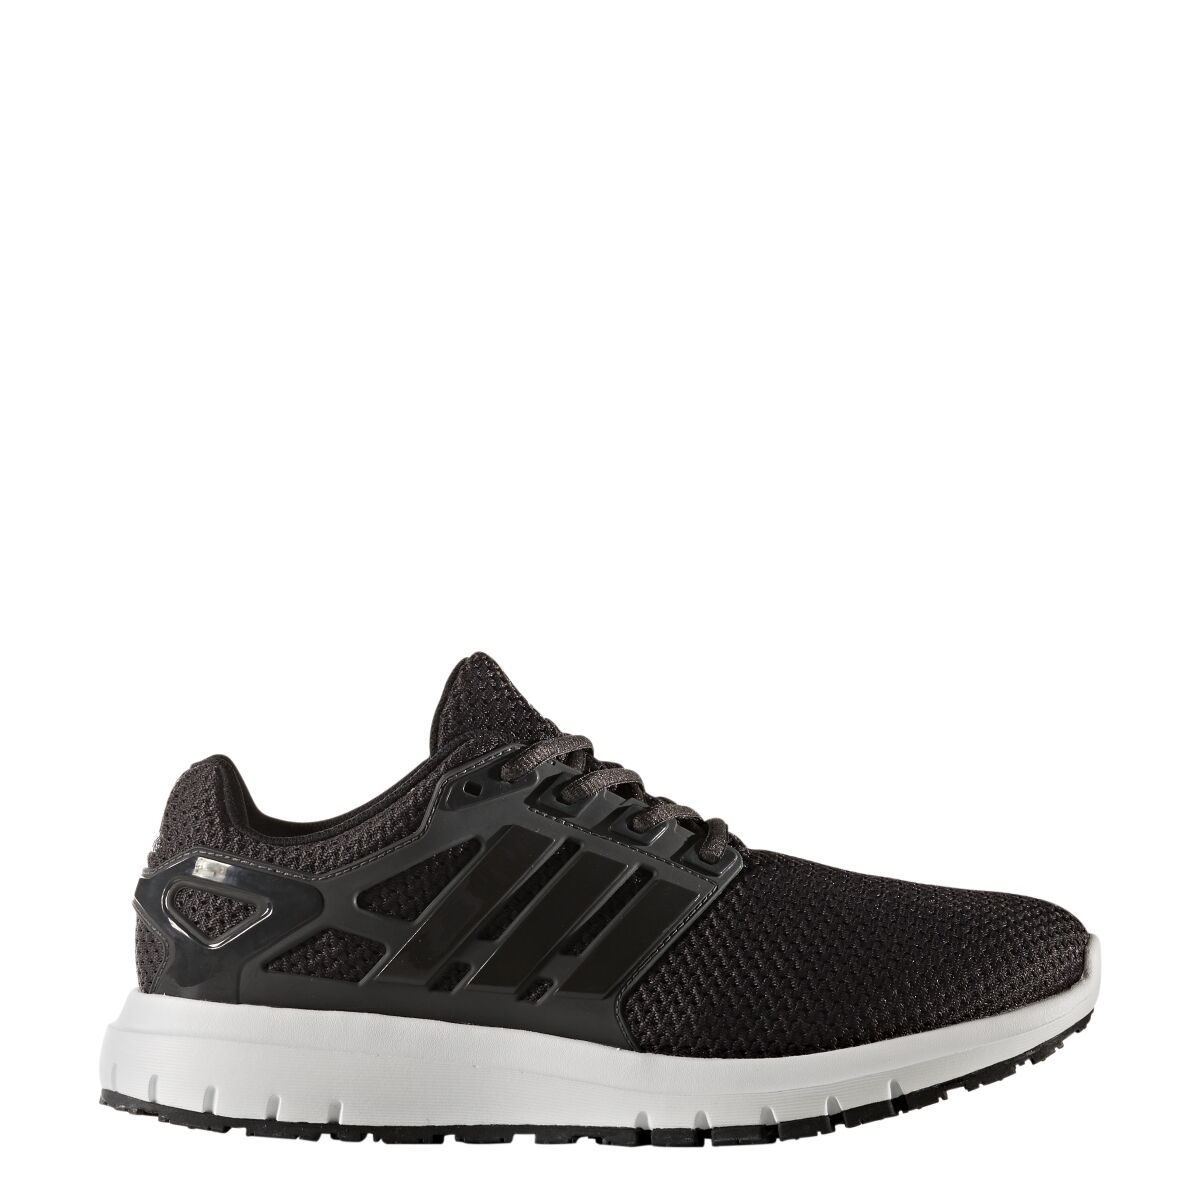 Adidas Energy Cloud Wide Width Black Running Shoes Mens BY9058 Sizes 8-12 Wide